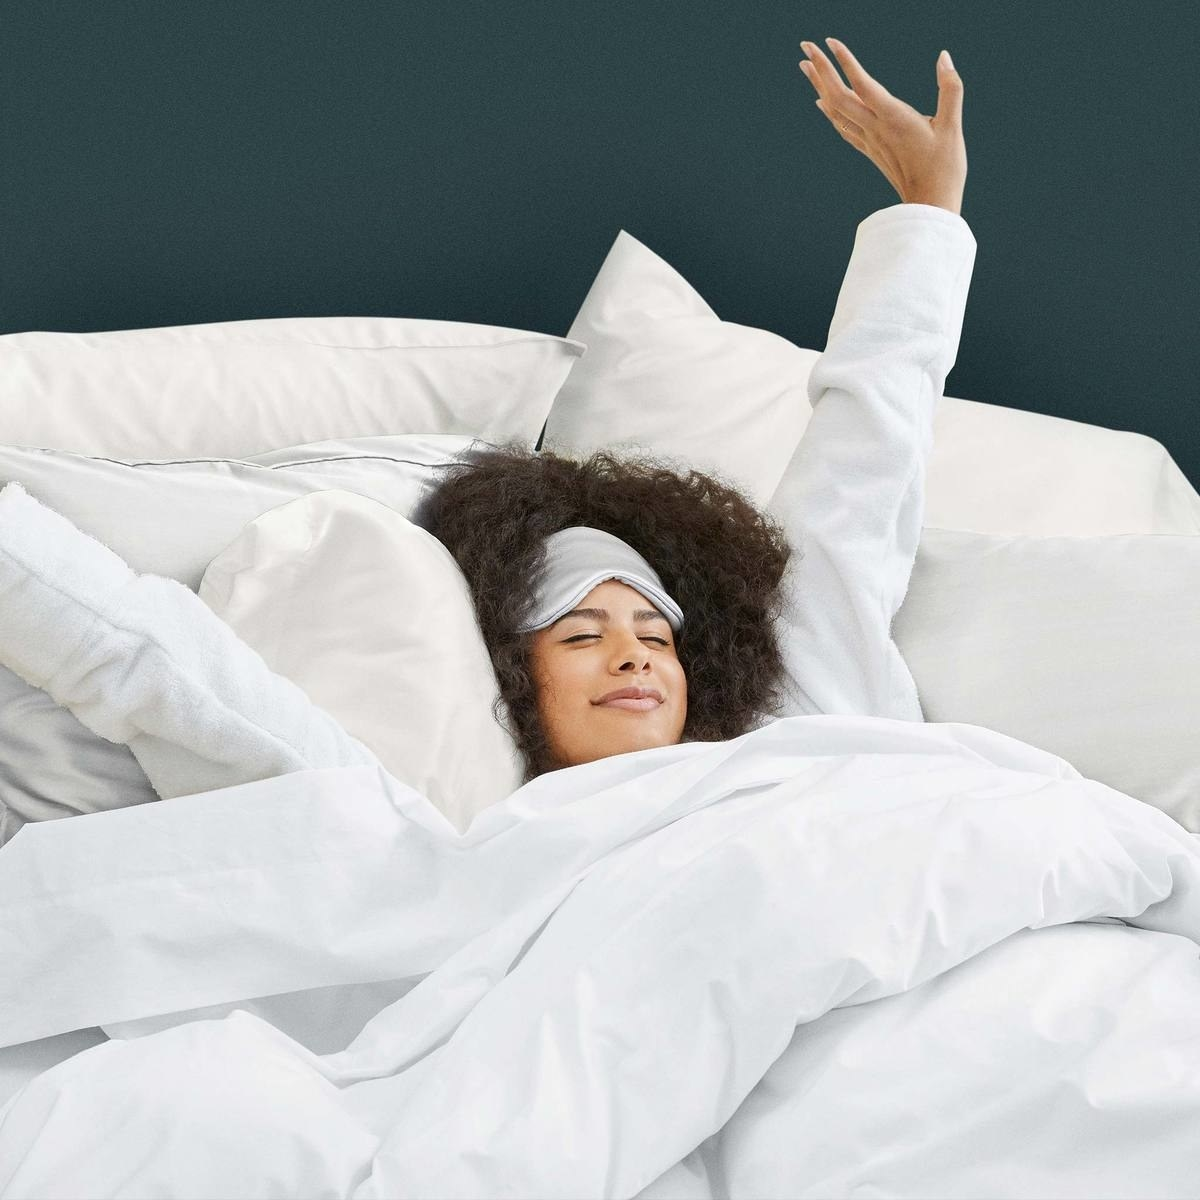 a model stretches from under brooklinen bedding